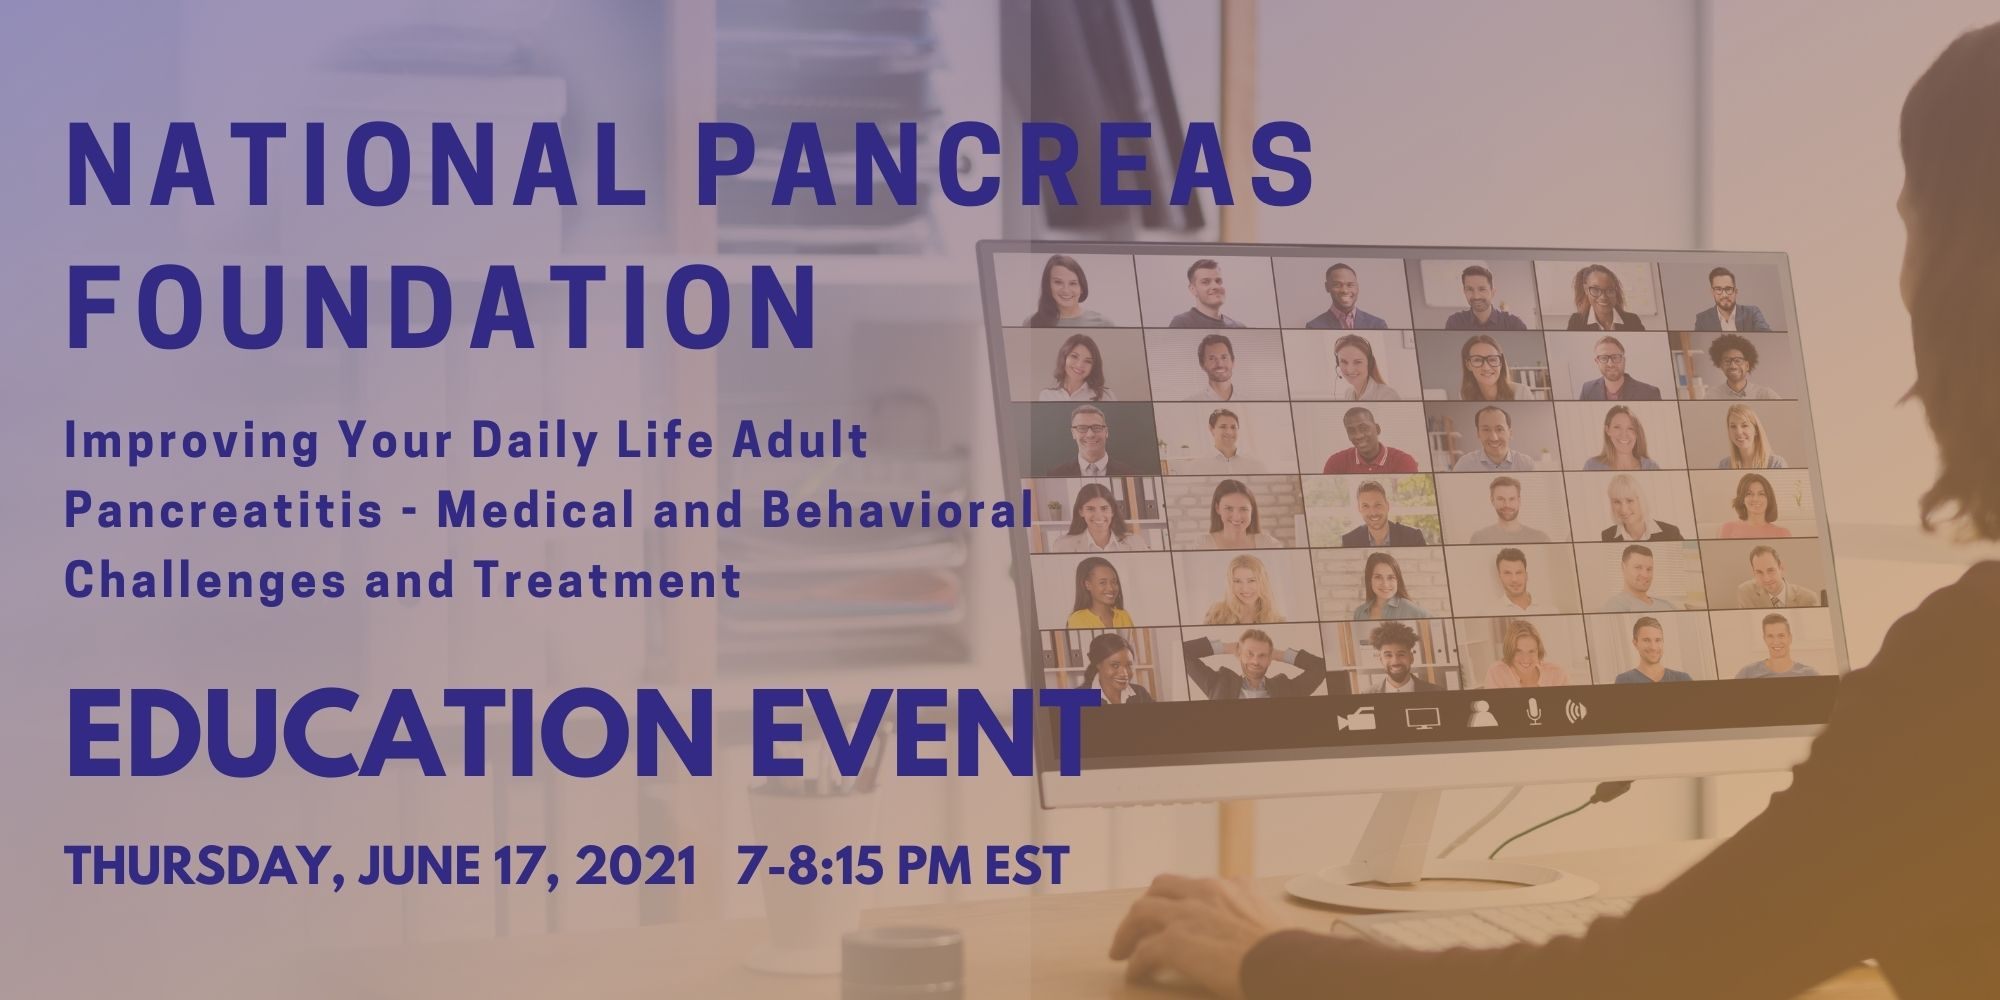 NPF Improving Your Daily Life Adult Pancreatitis- Medical and Behavioral Challenges and Treatment